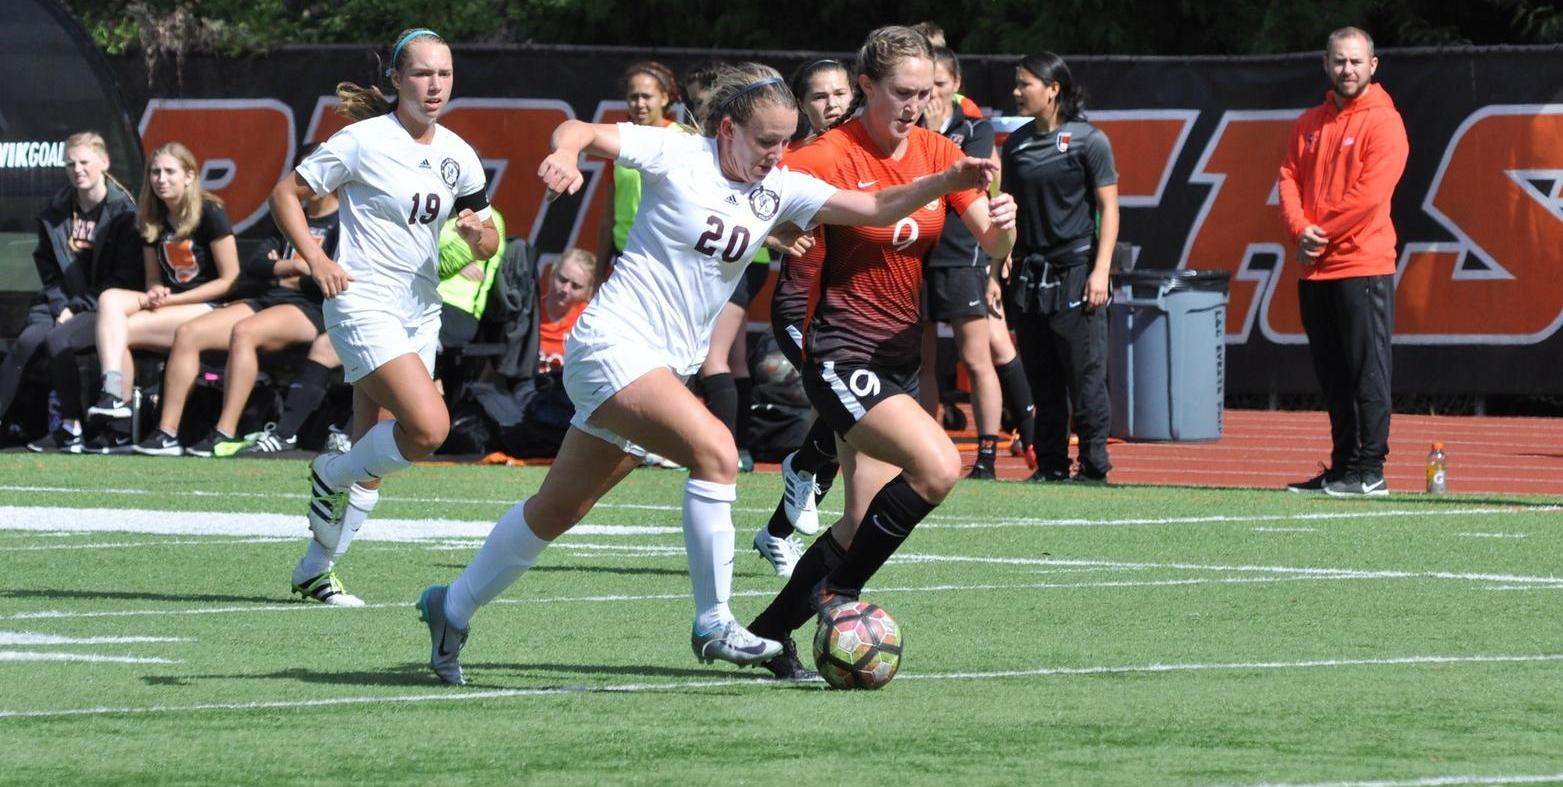 Deflection goal keeps Pios out of win column